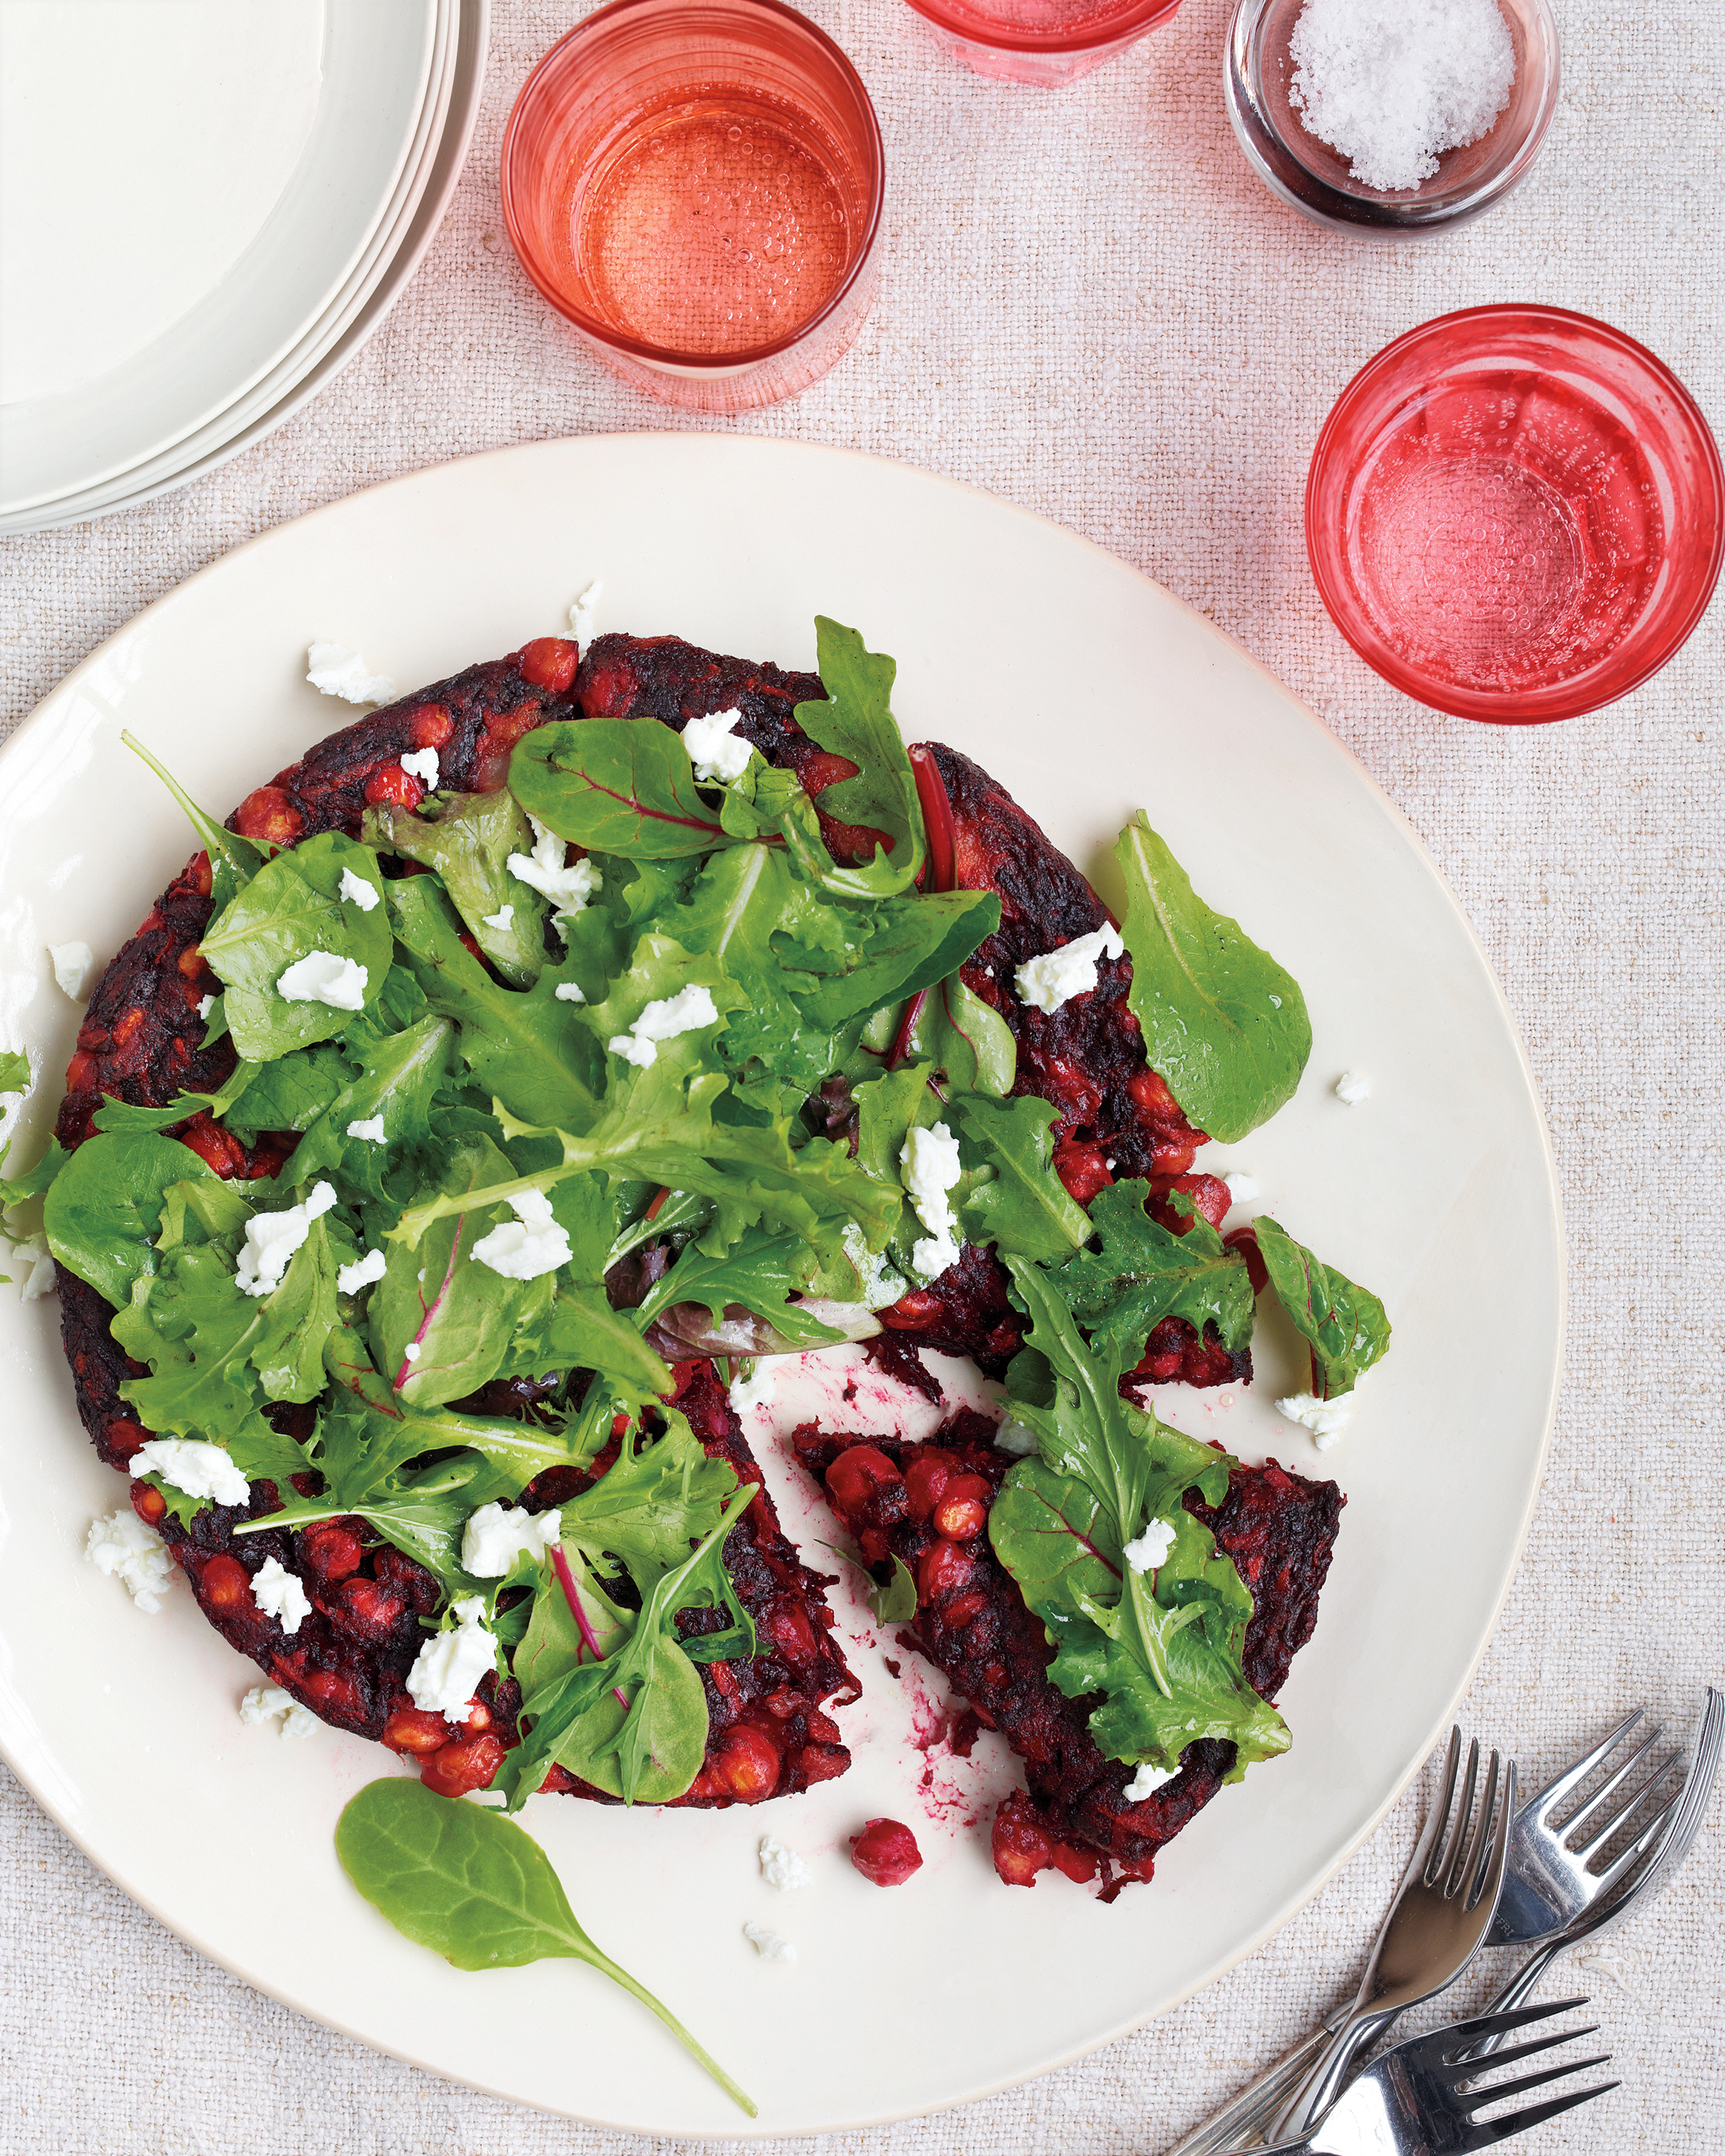 Harvest Vegetable Galette with Greens and Goat Cheese